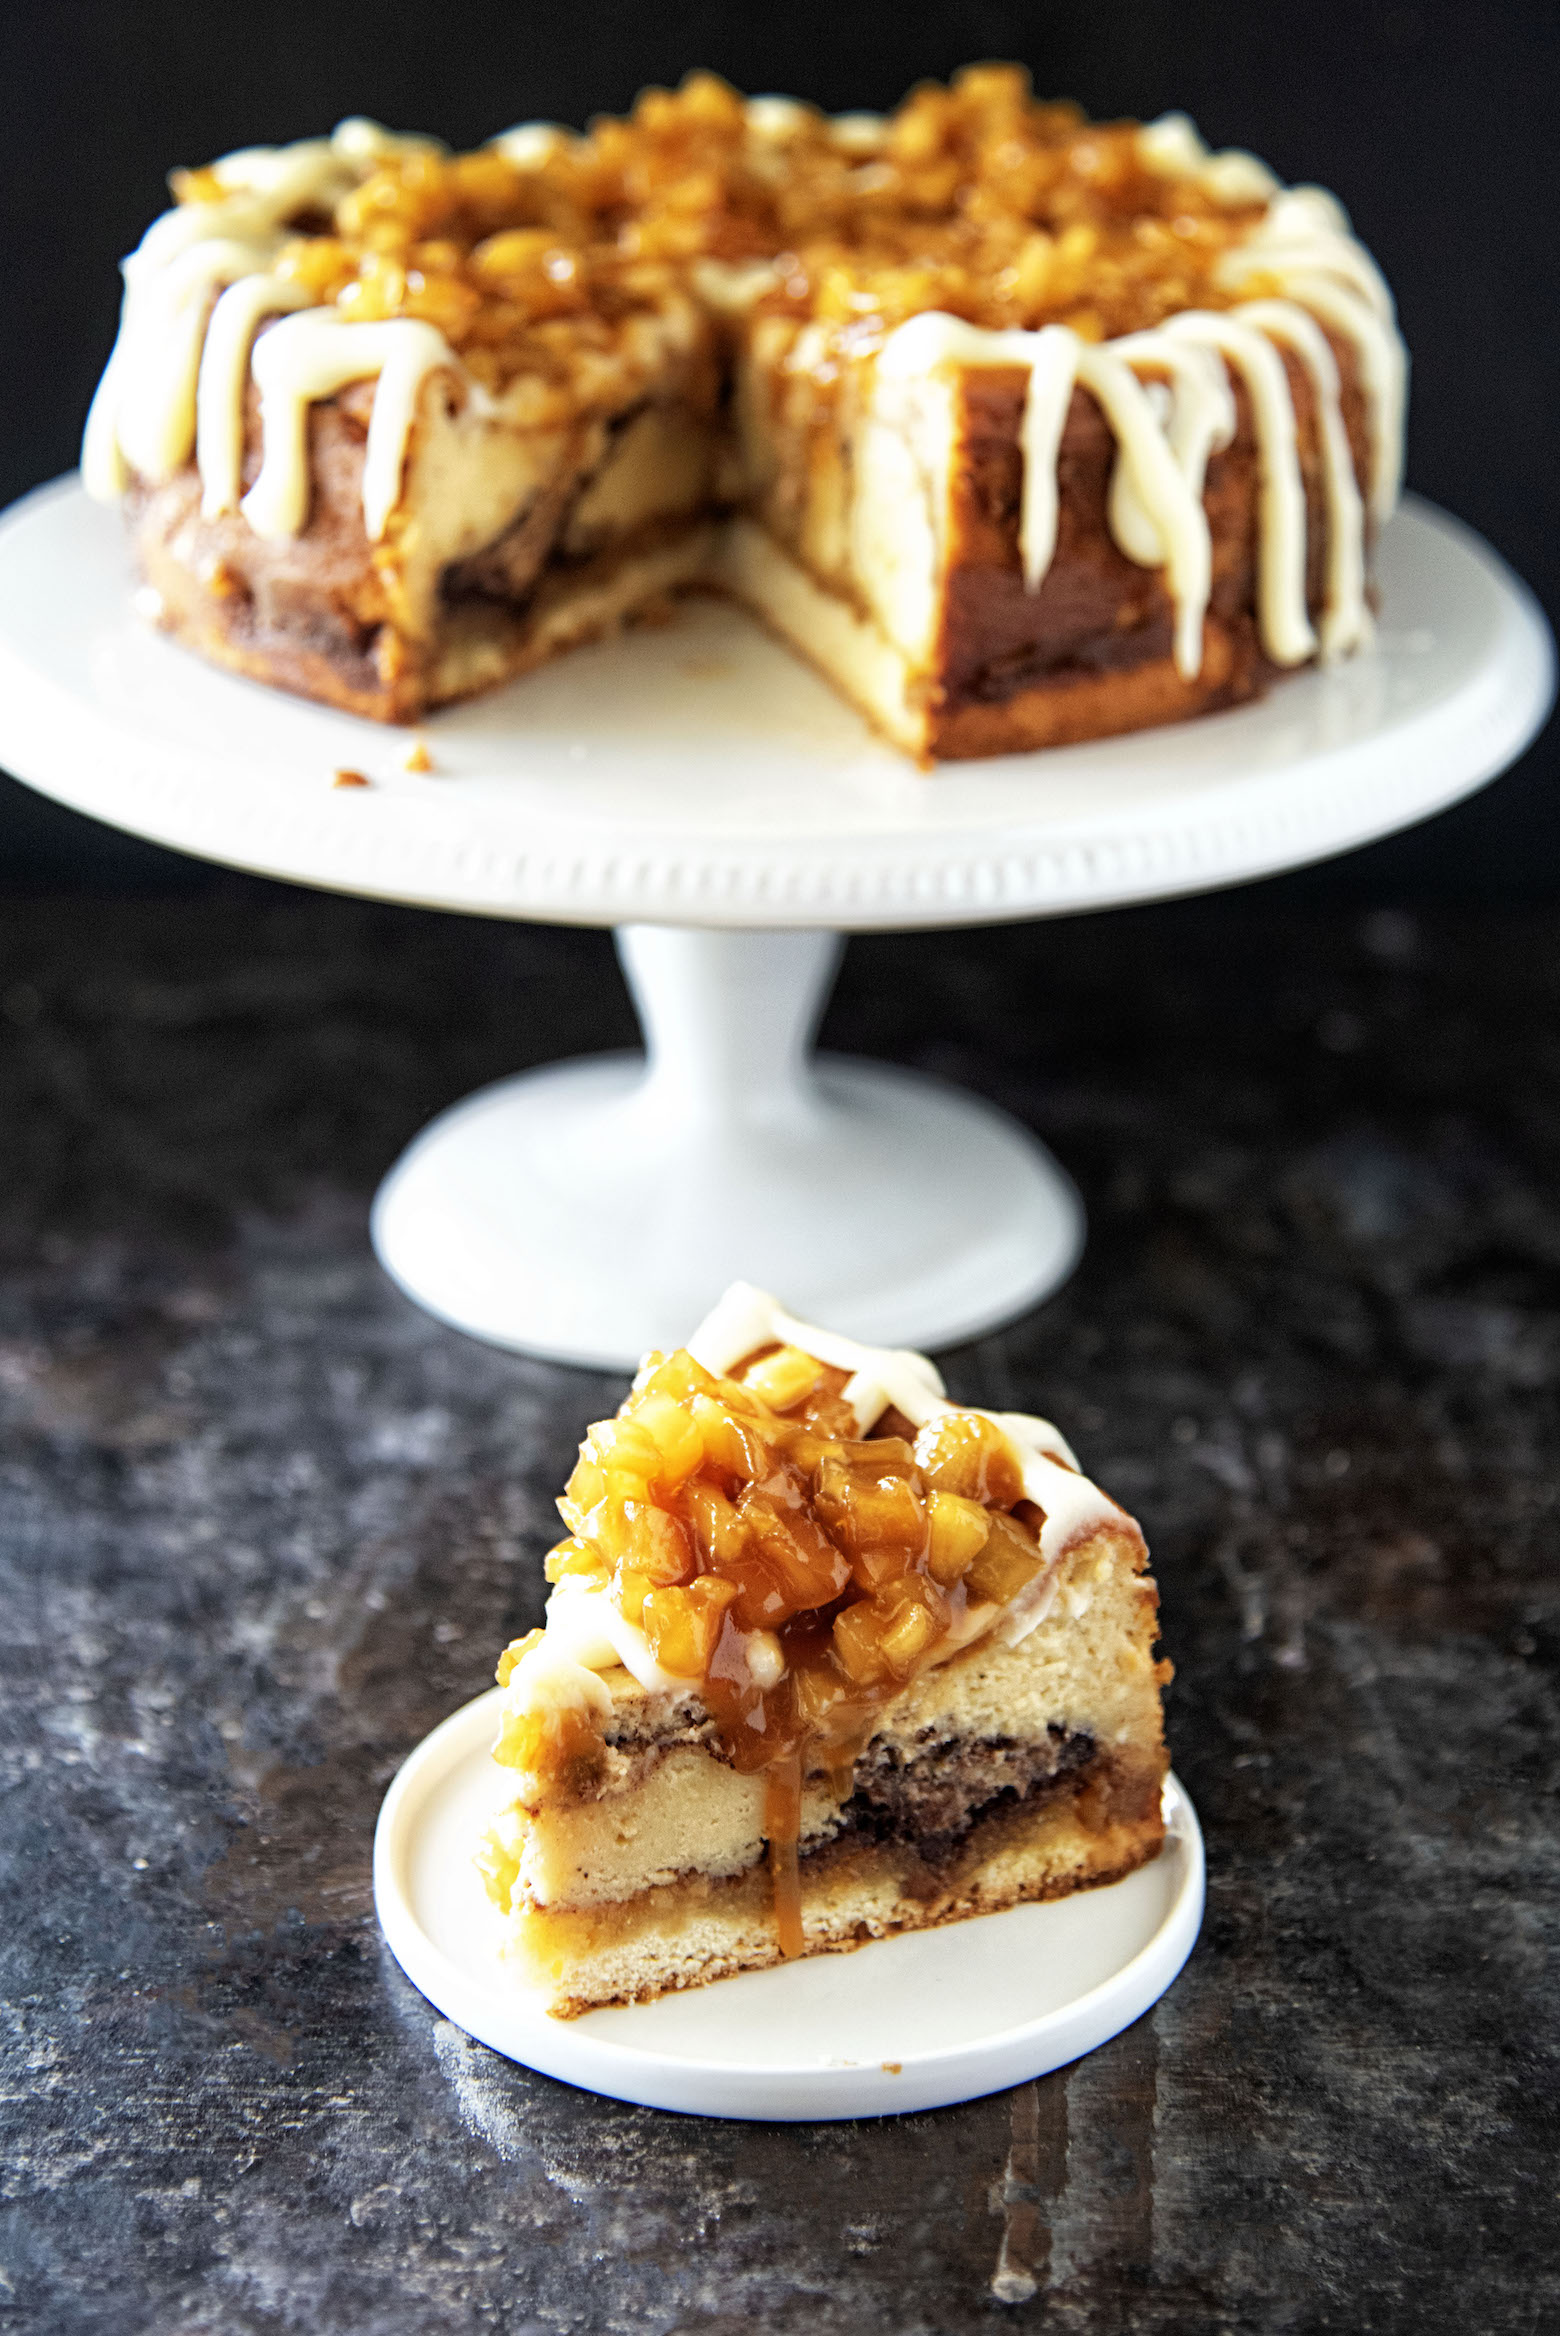 Cinnamon Roll Caramel Apple Cheesecake